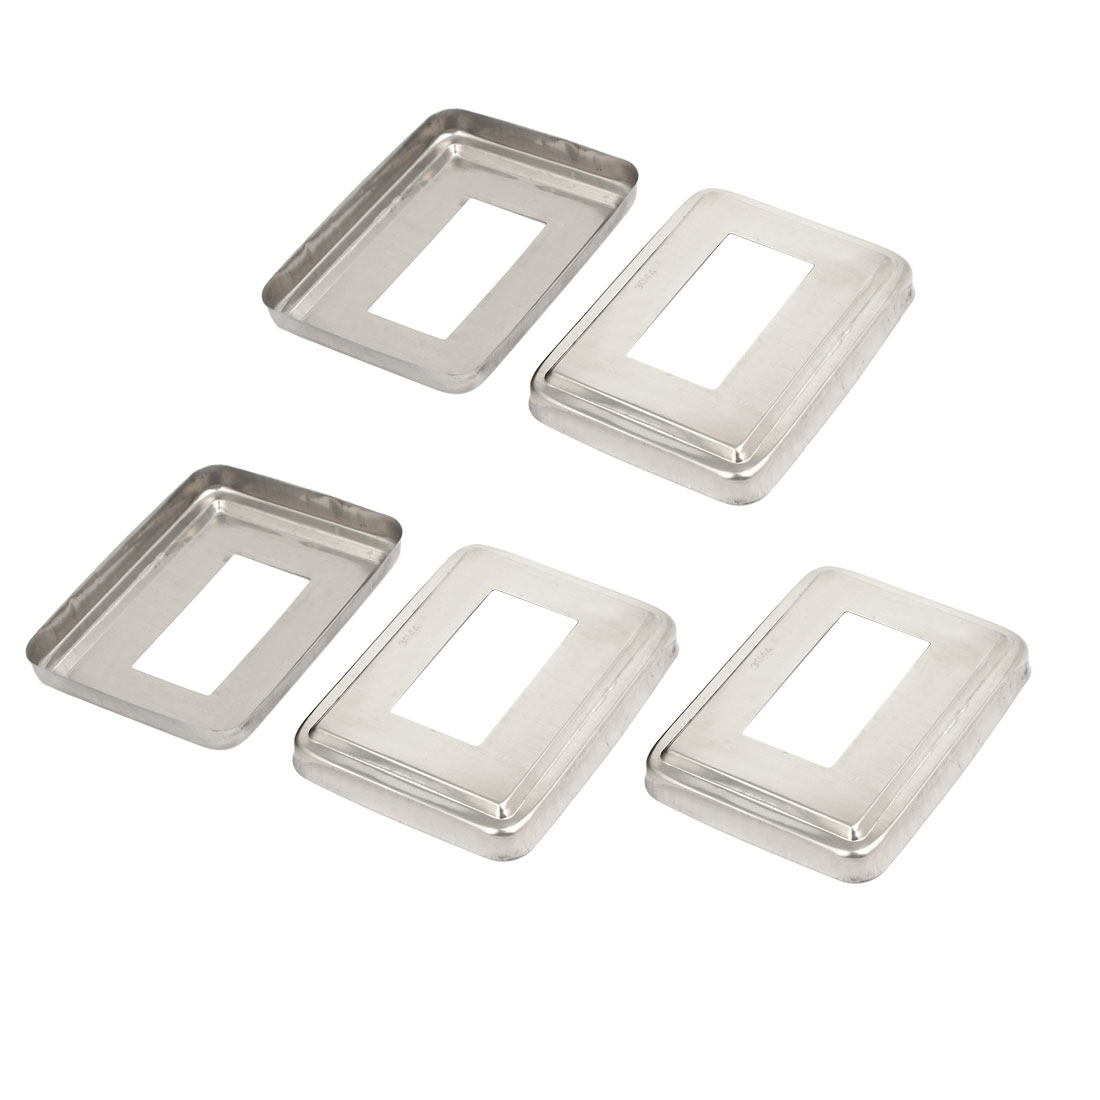 5pcs Ladder Handrail Hand Rail 60mm x 30mm Post Plate Cover 304 Stainless Steel